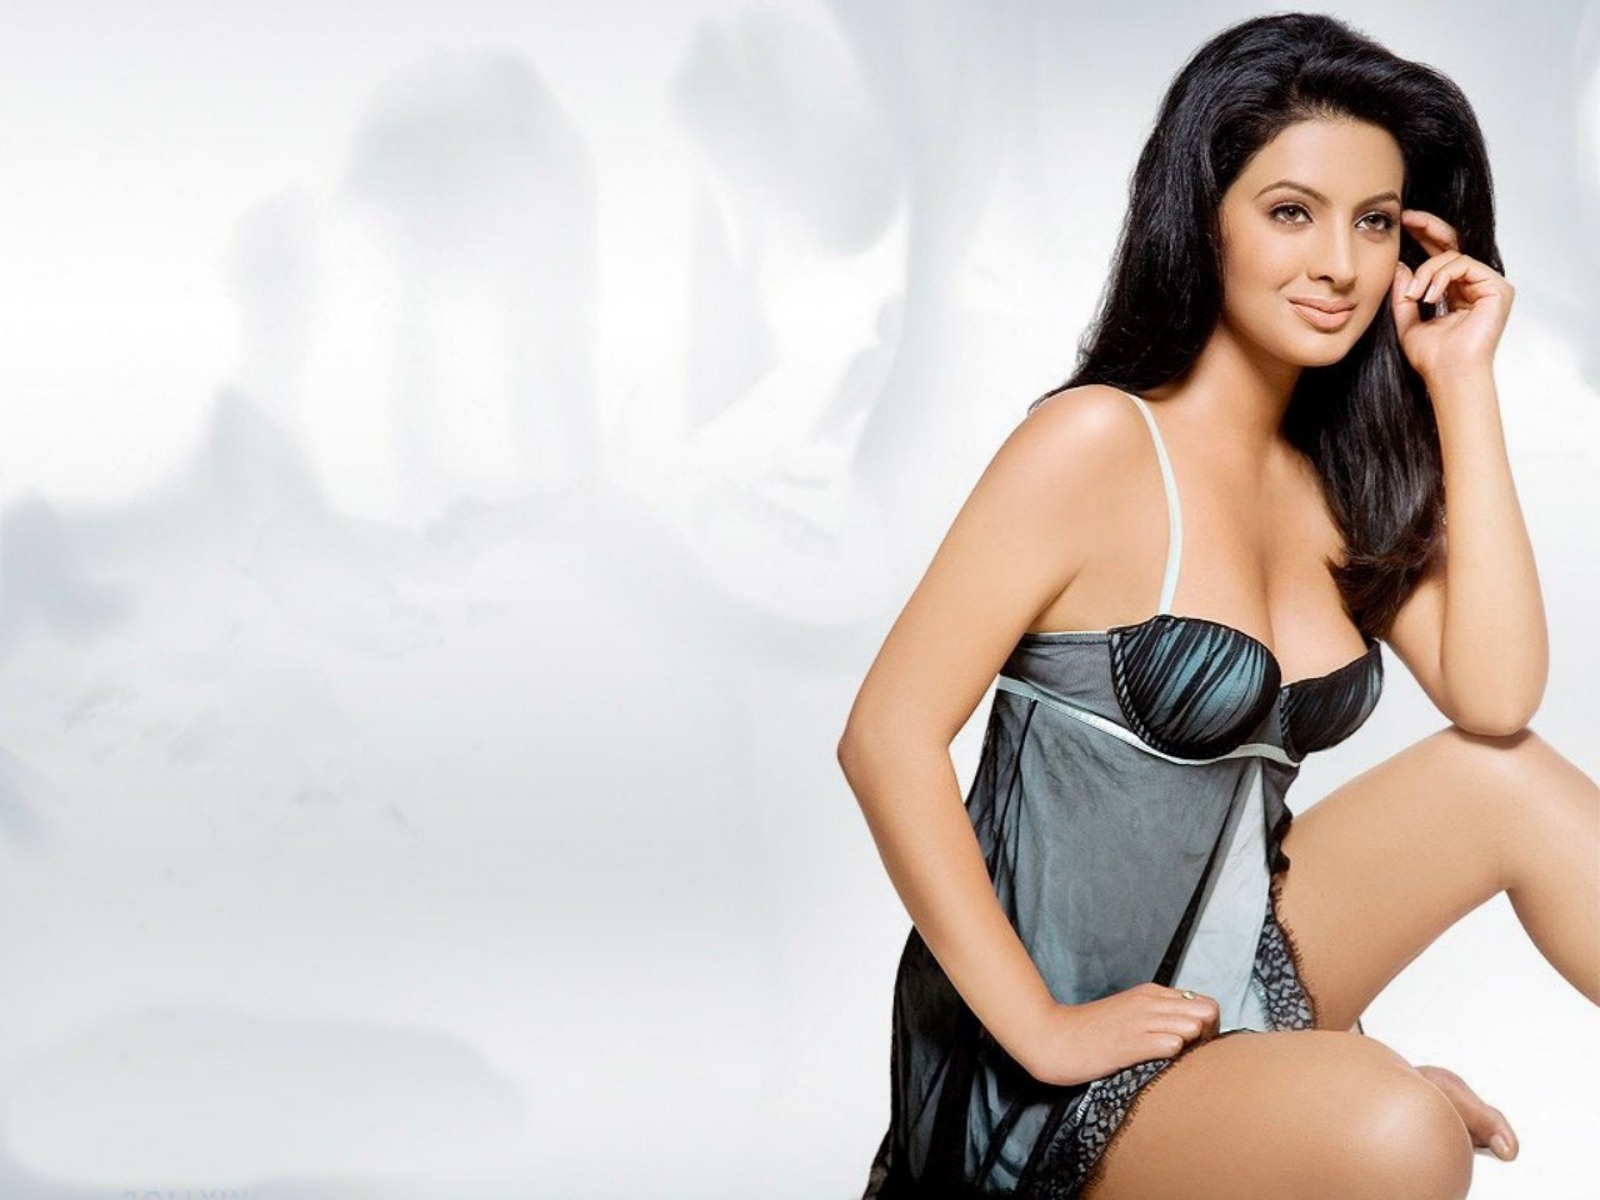 Hot bollywood celebrity geeta basra wallpaper